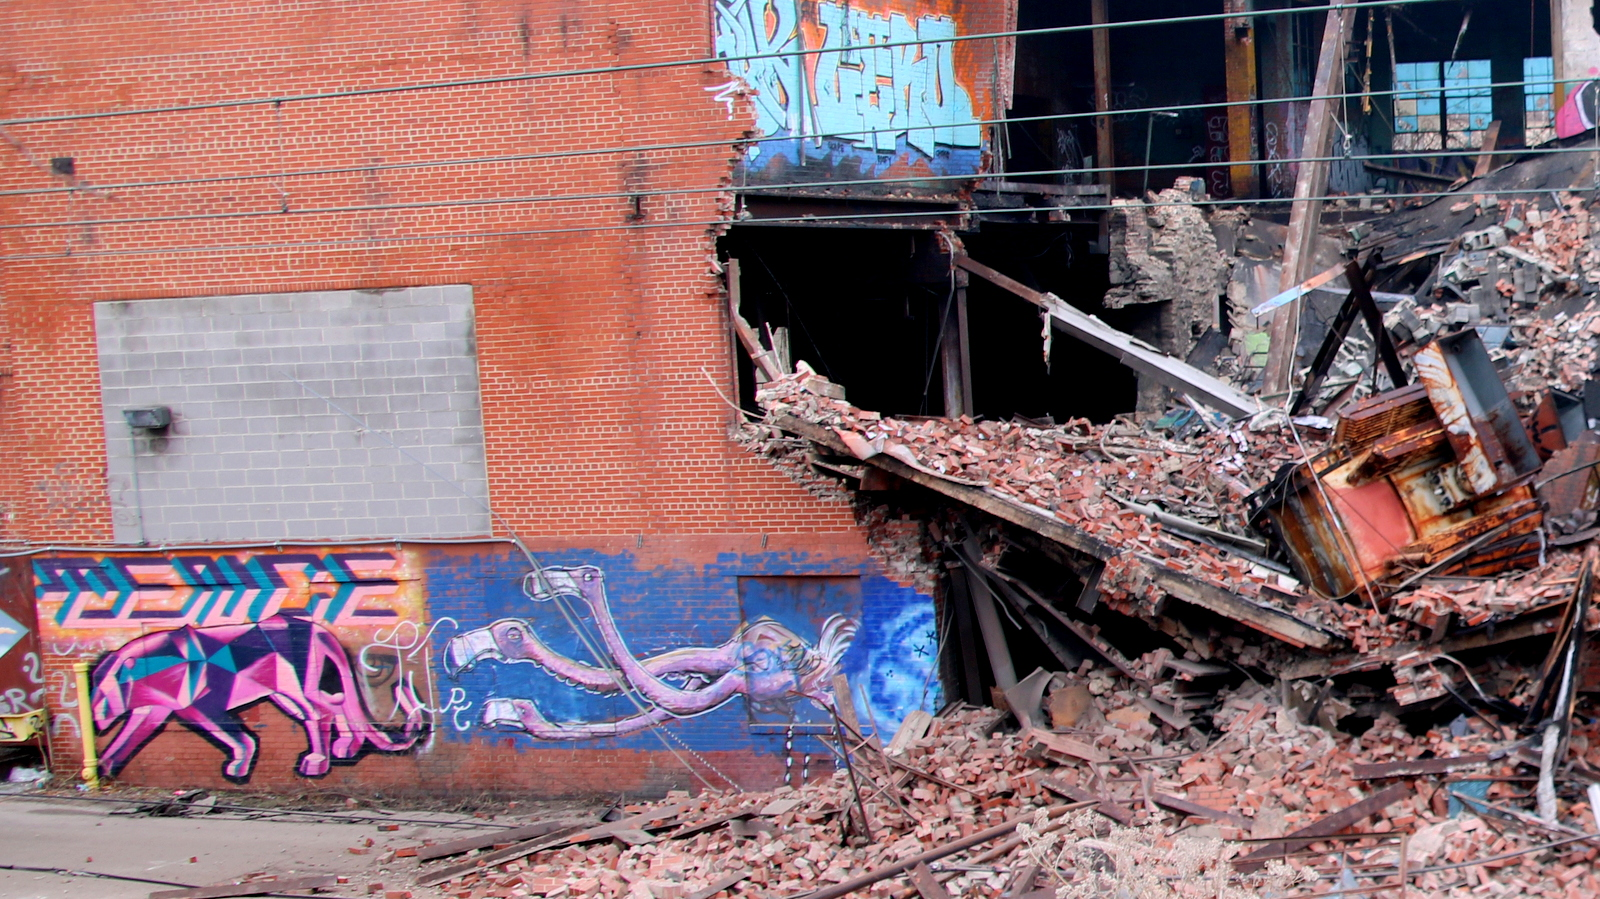 Vacant and unused for decades, the Schenuit building has been a canvas for Baltimore street artists. (Fern Shen)